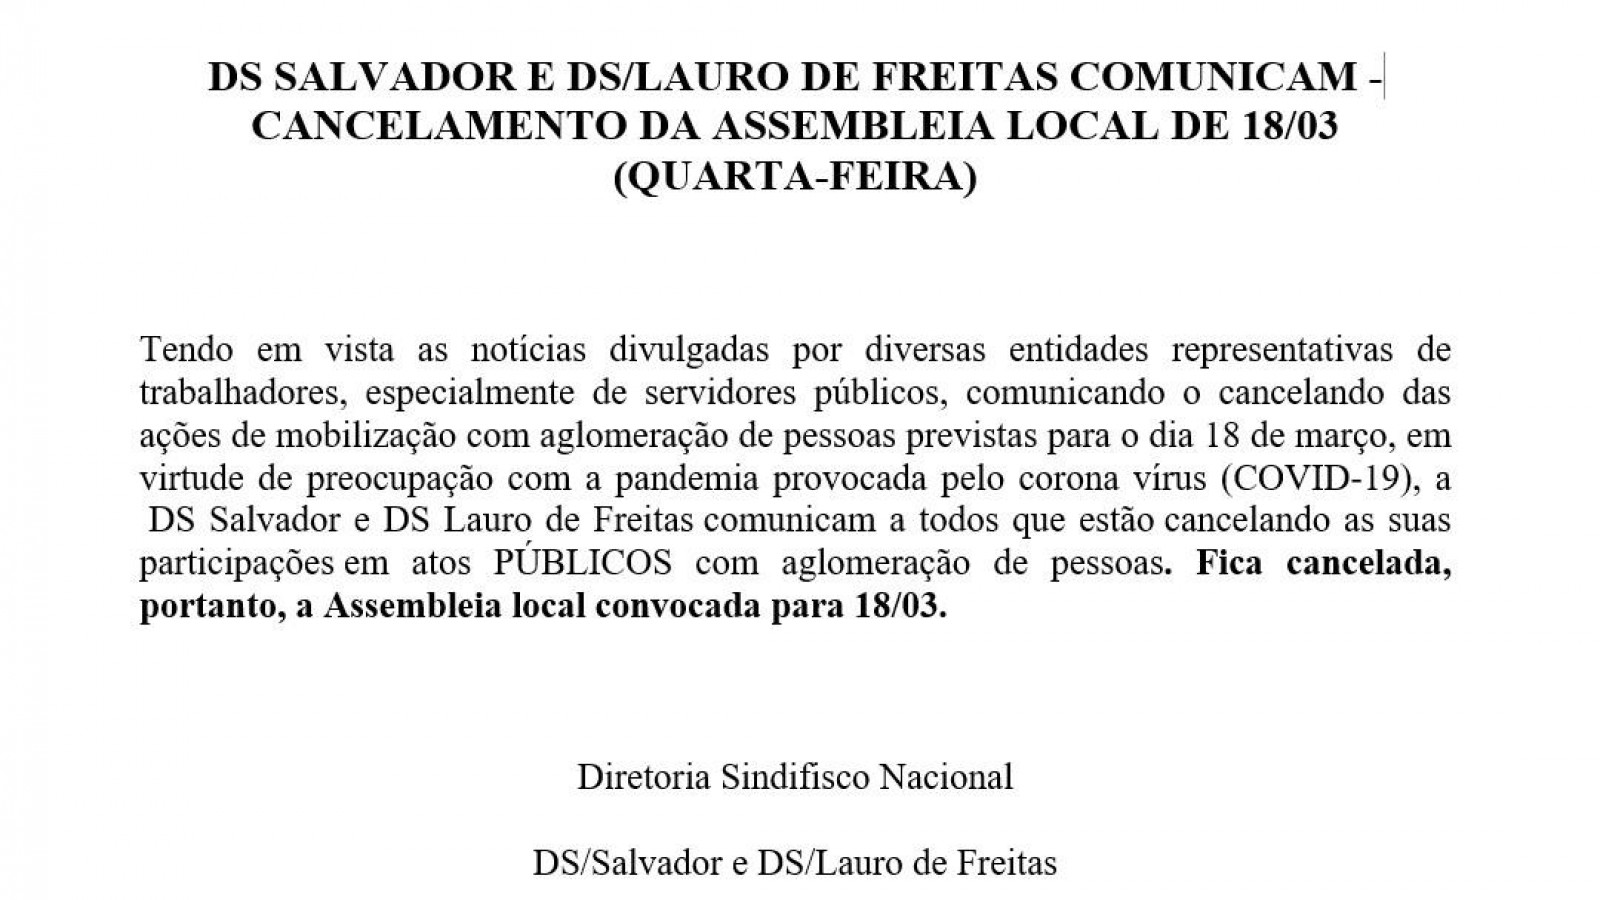 CANCELAMENTO: DS Salvador e DS Lauro de Freitas cancelam Assembleia Local do dia 18/3